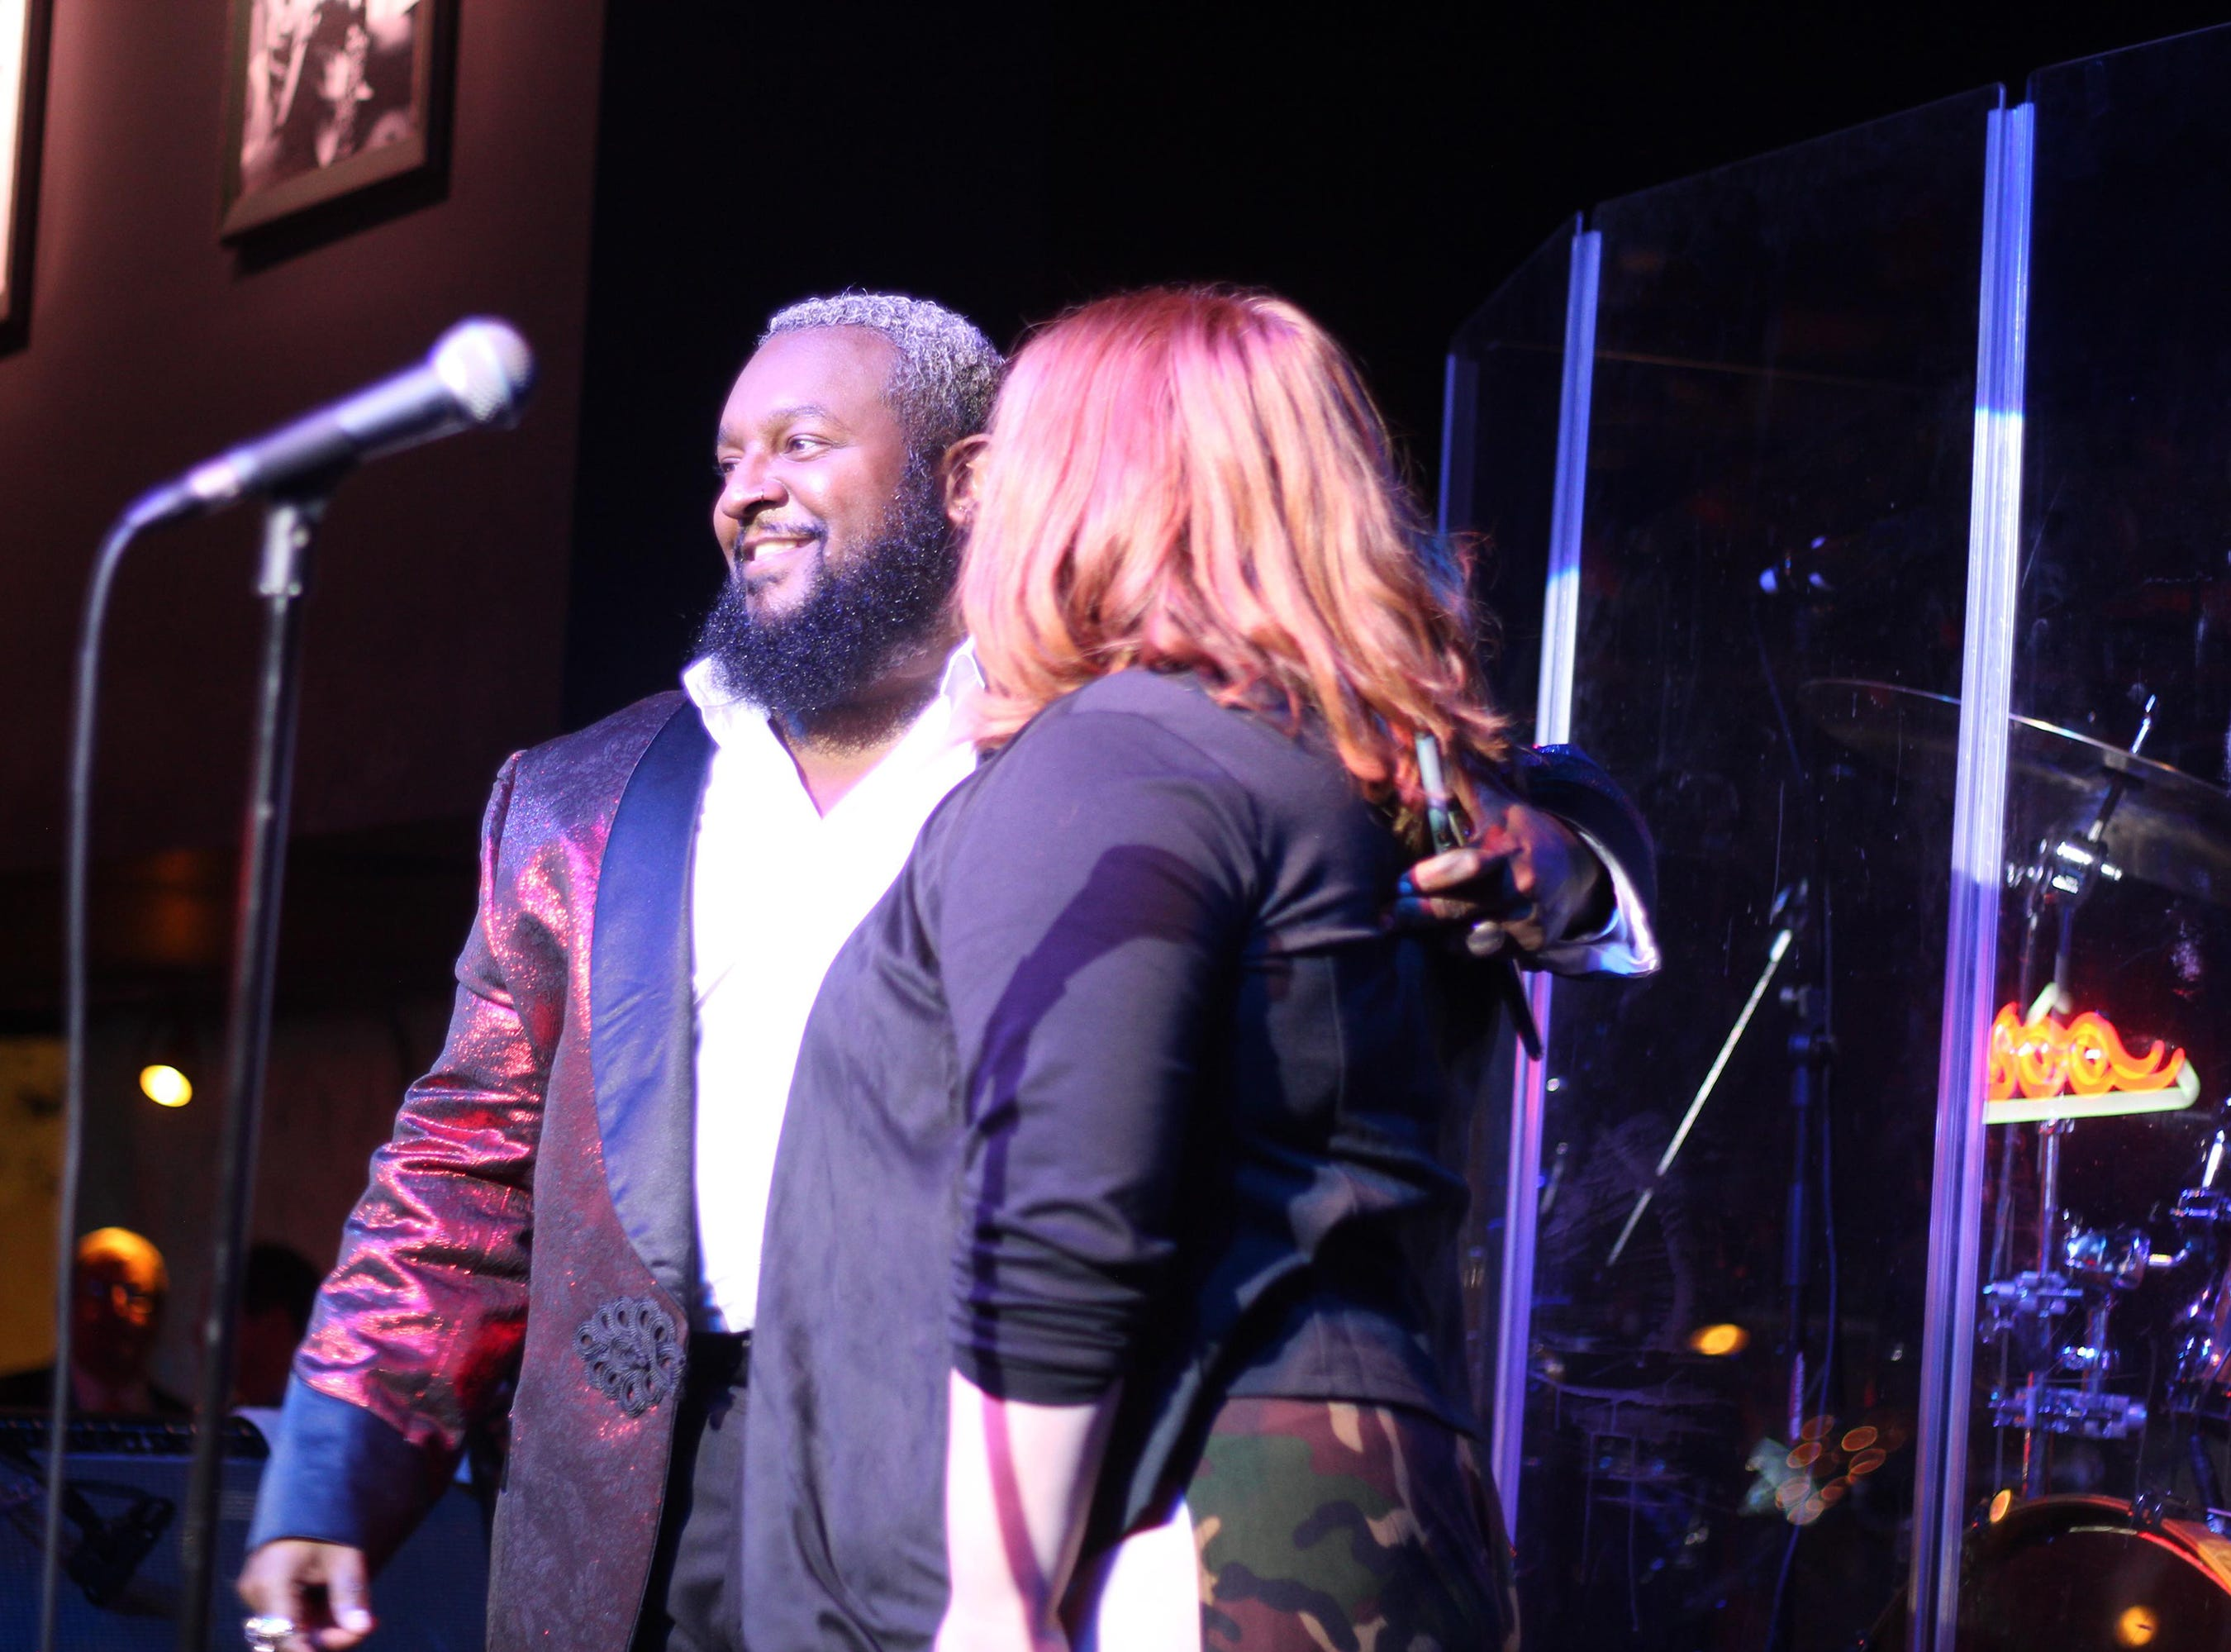 """Patrique Fortson, left, and MaKenzie Thomas, from season 15 of NBC's """"The Voice,"""" joined top 3 finalist Kirk Jay, a Montgomery resident and Bay Minette native, in a New Year's Eve concert Monday, Dec. 31, 2018, at B.B. King's Blues Club in Montgomery."""